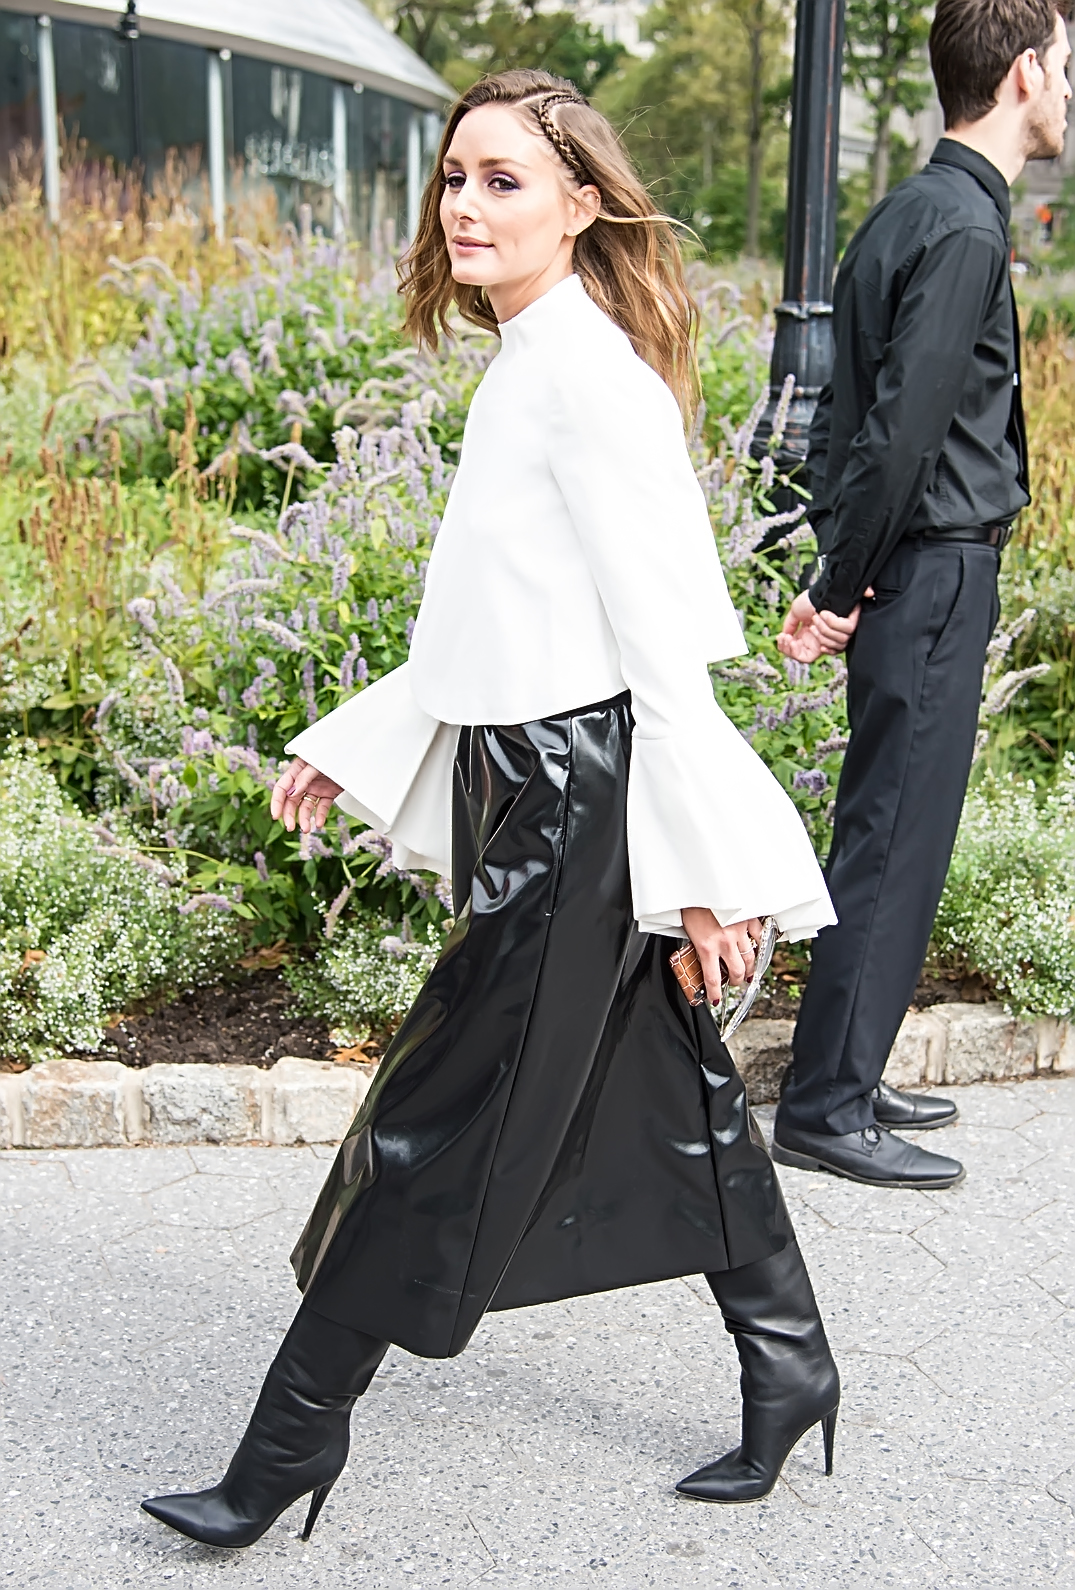 Celebrities arrive at Carolina Herrera fashion show during New York Fashion Week at Battery Park in New York City. 09 Sep 2019, Image: 469948508, License: Rights-managed, Restrictions: World Rights, Model Release: no, Credit line: Profimedia, Mega Agency